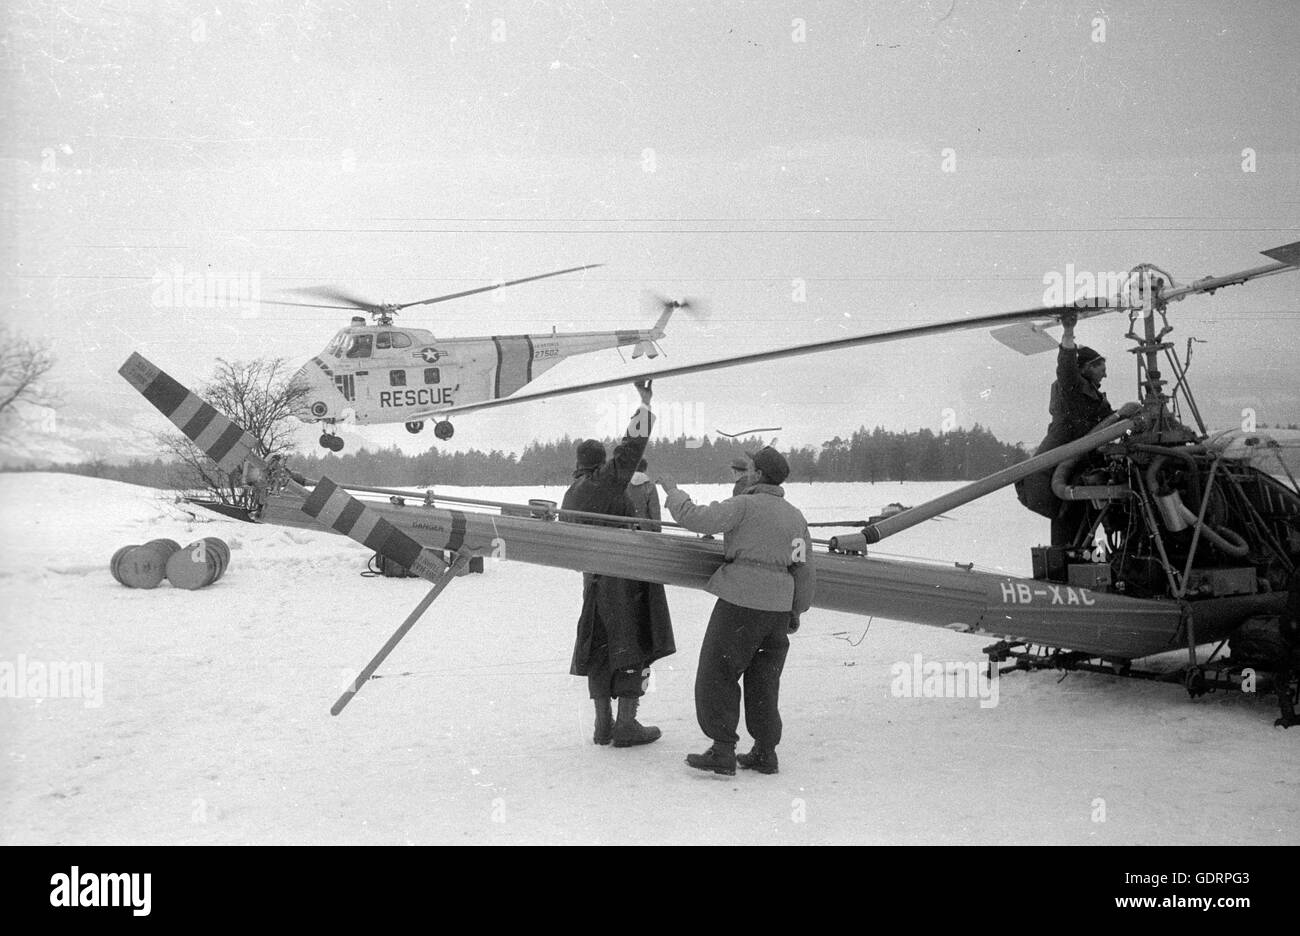 Rescue helicopter in action after the avalanche disaster in Vorarlberg, 1954 - Stock Image